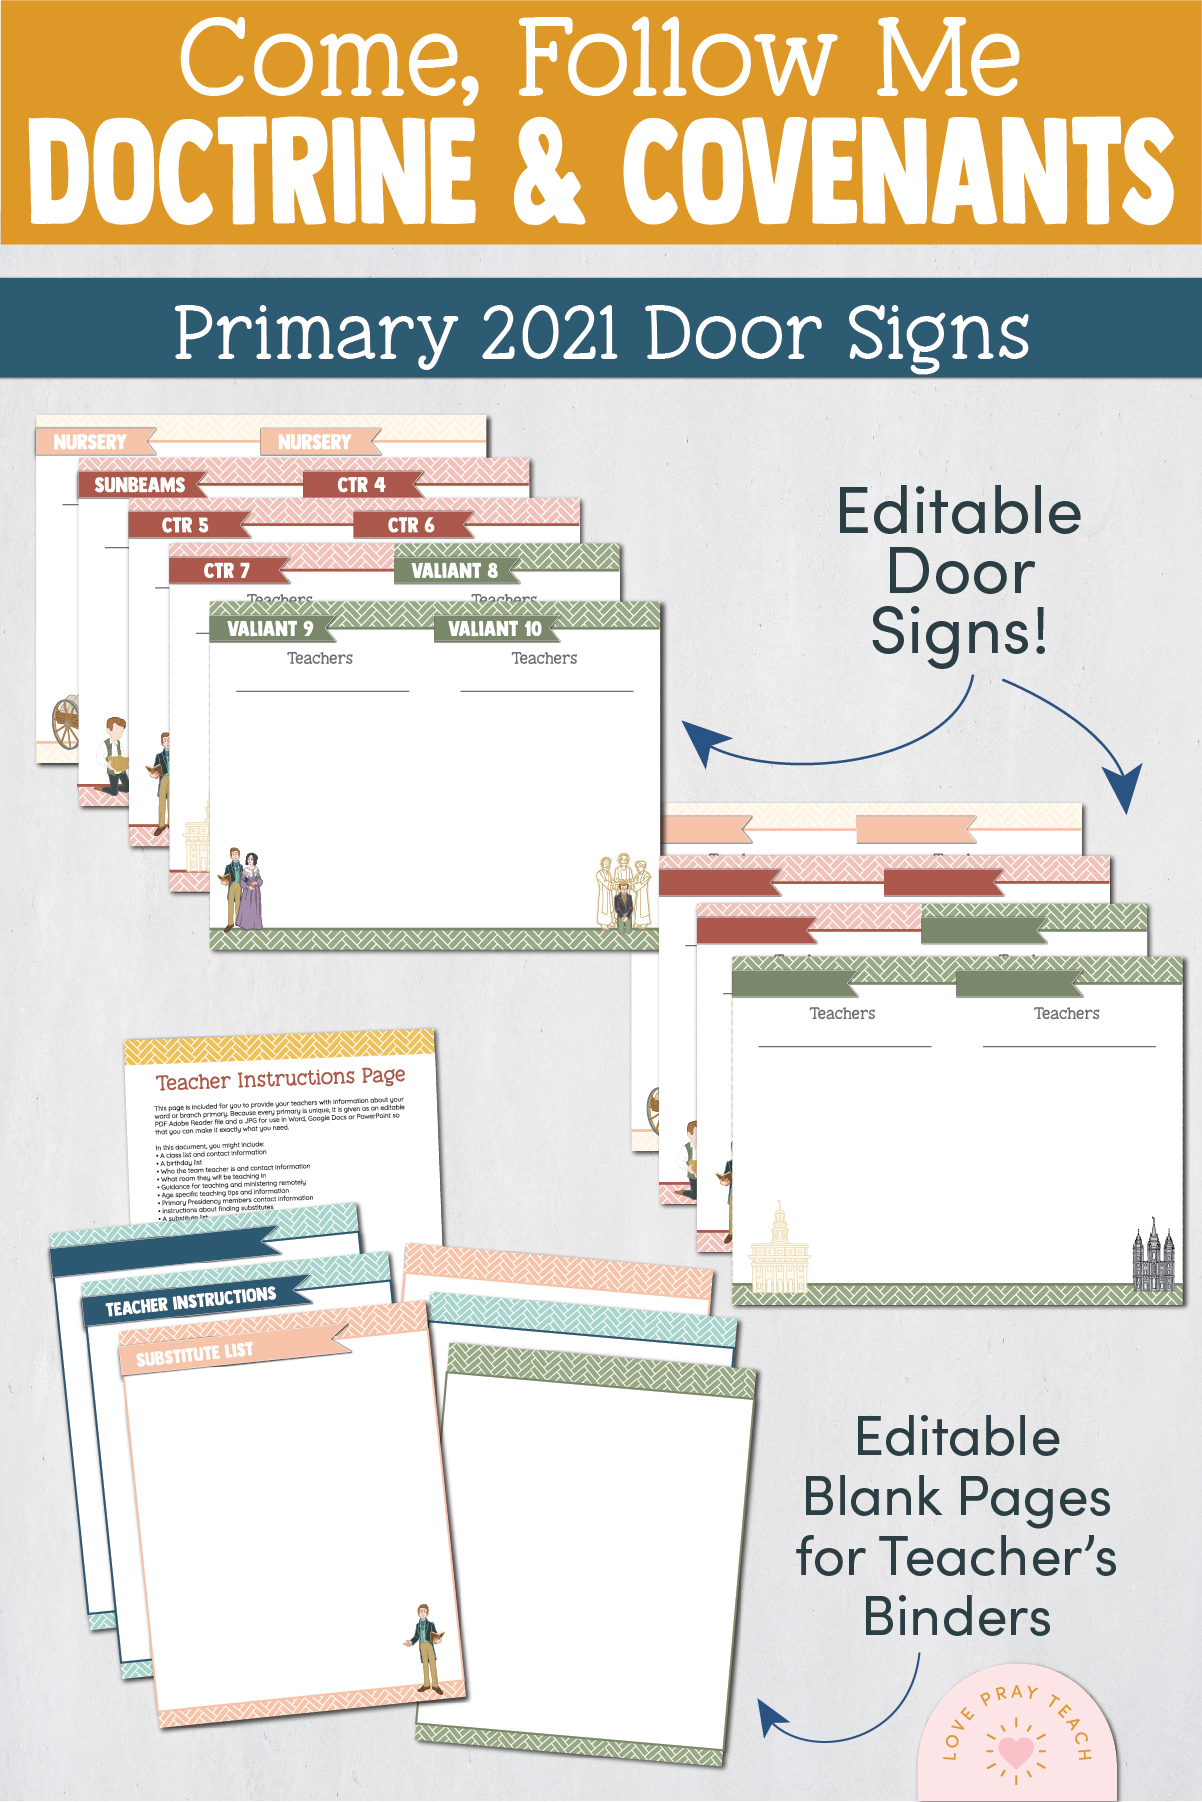 Primary 2021 Doctrine & Covenants Editable Classroom Door Signs www.LovePrayTeach.com